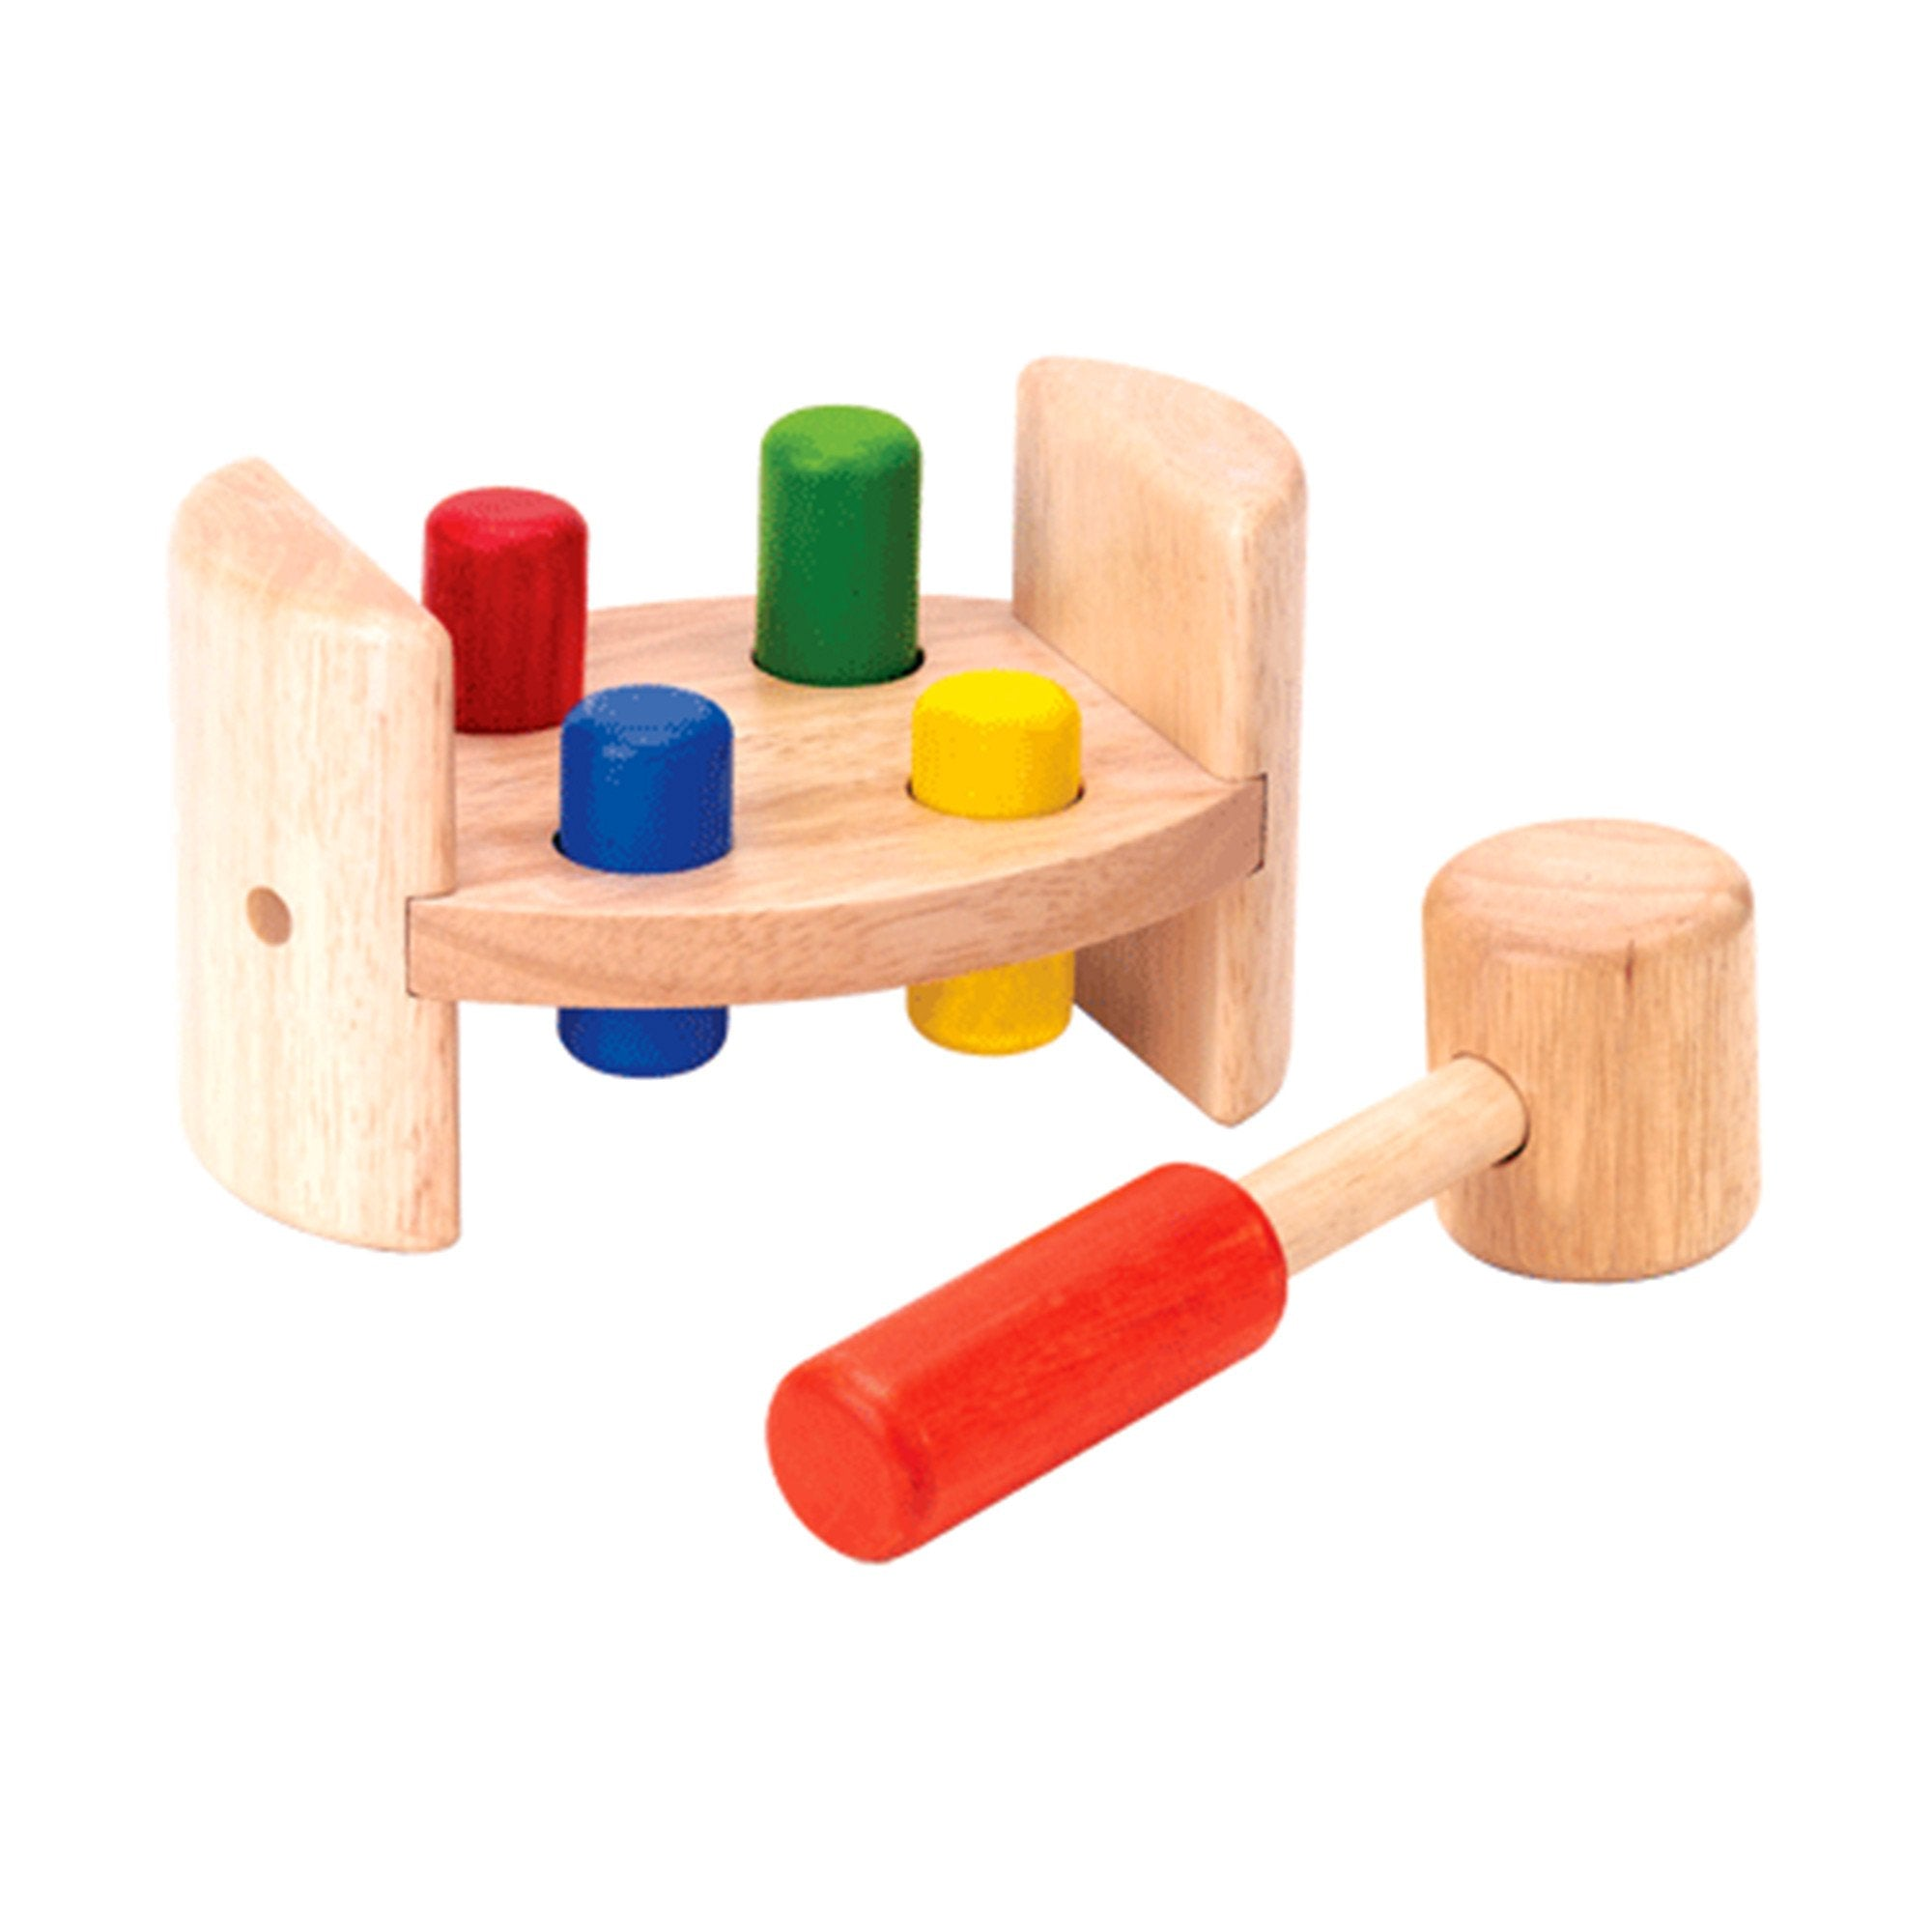 Voila Toys Quality Wooden Toys Little Earth Nest